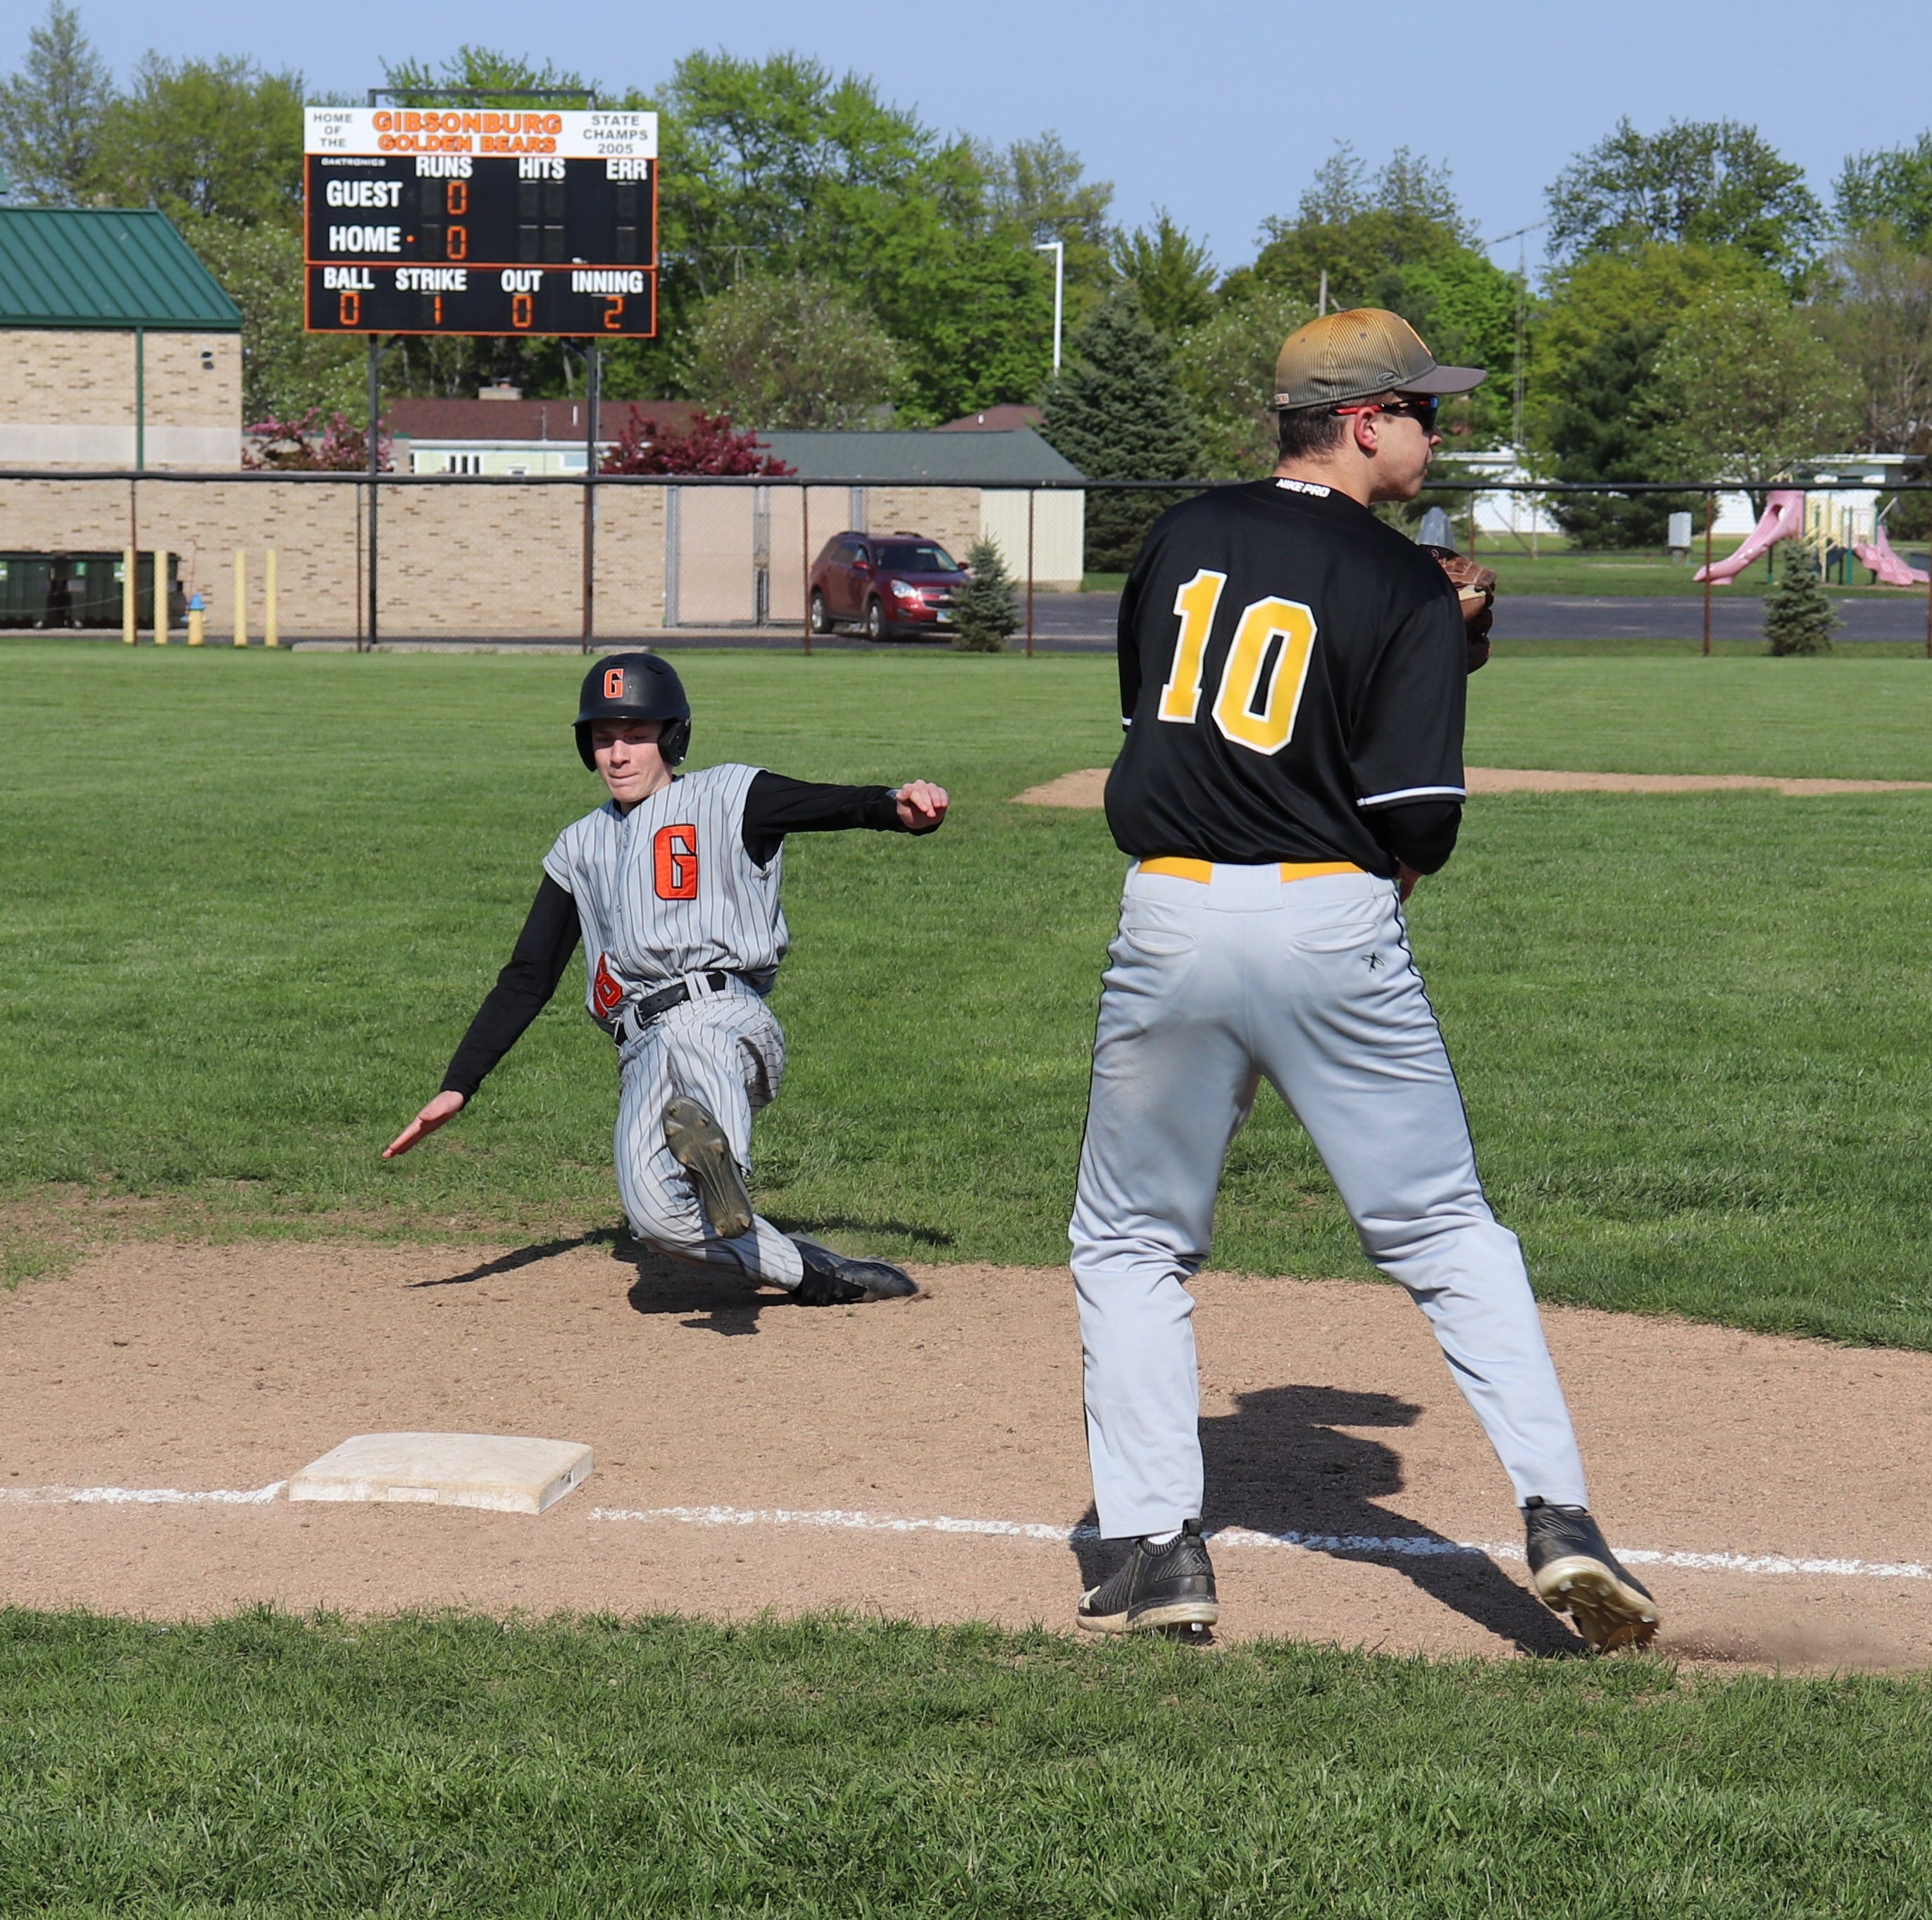 Gibsonburg remains in control of own destiny in River Division